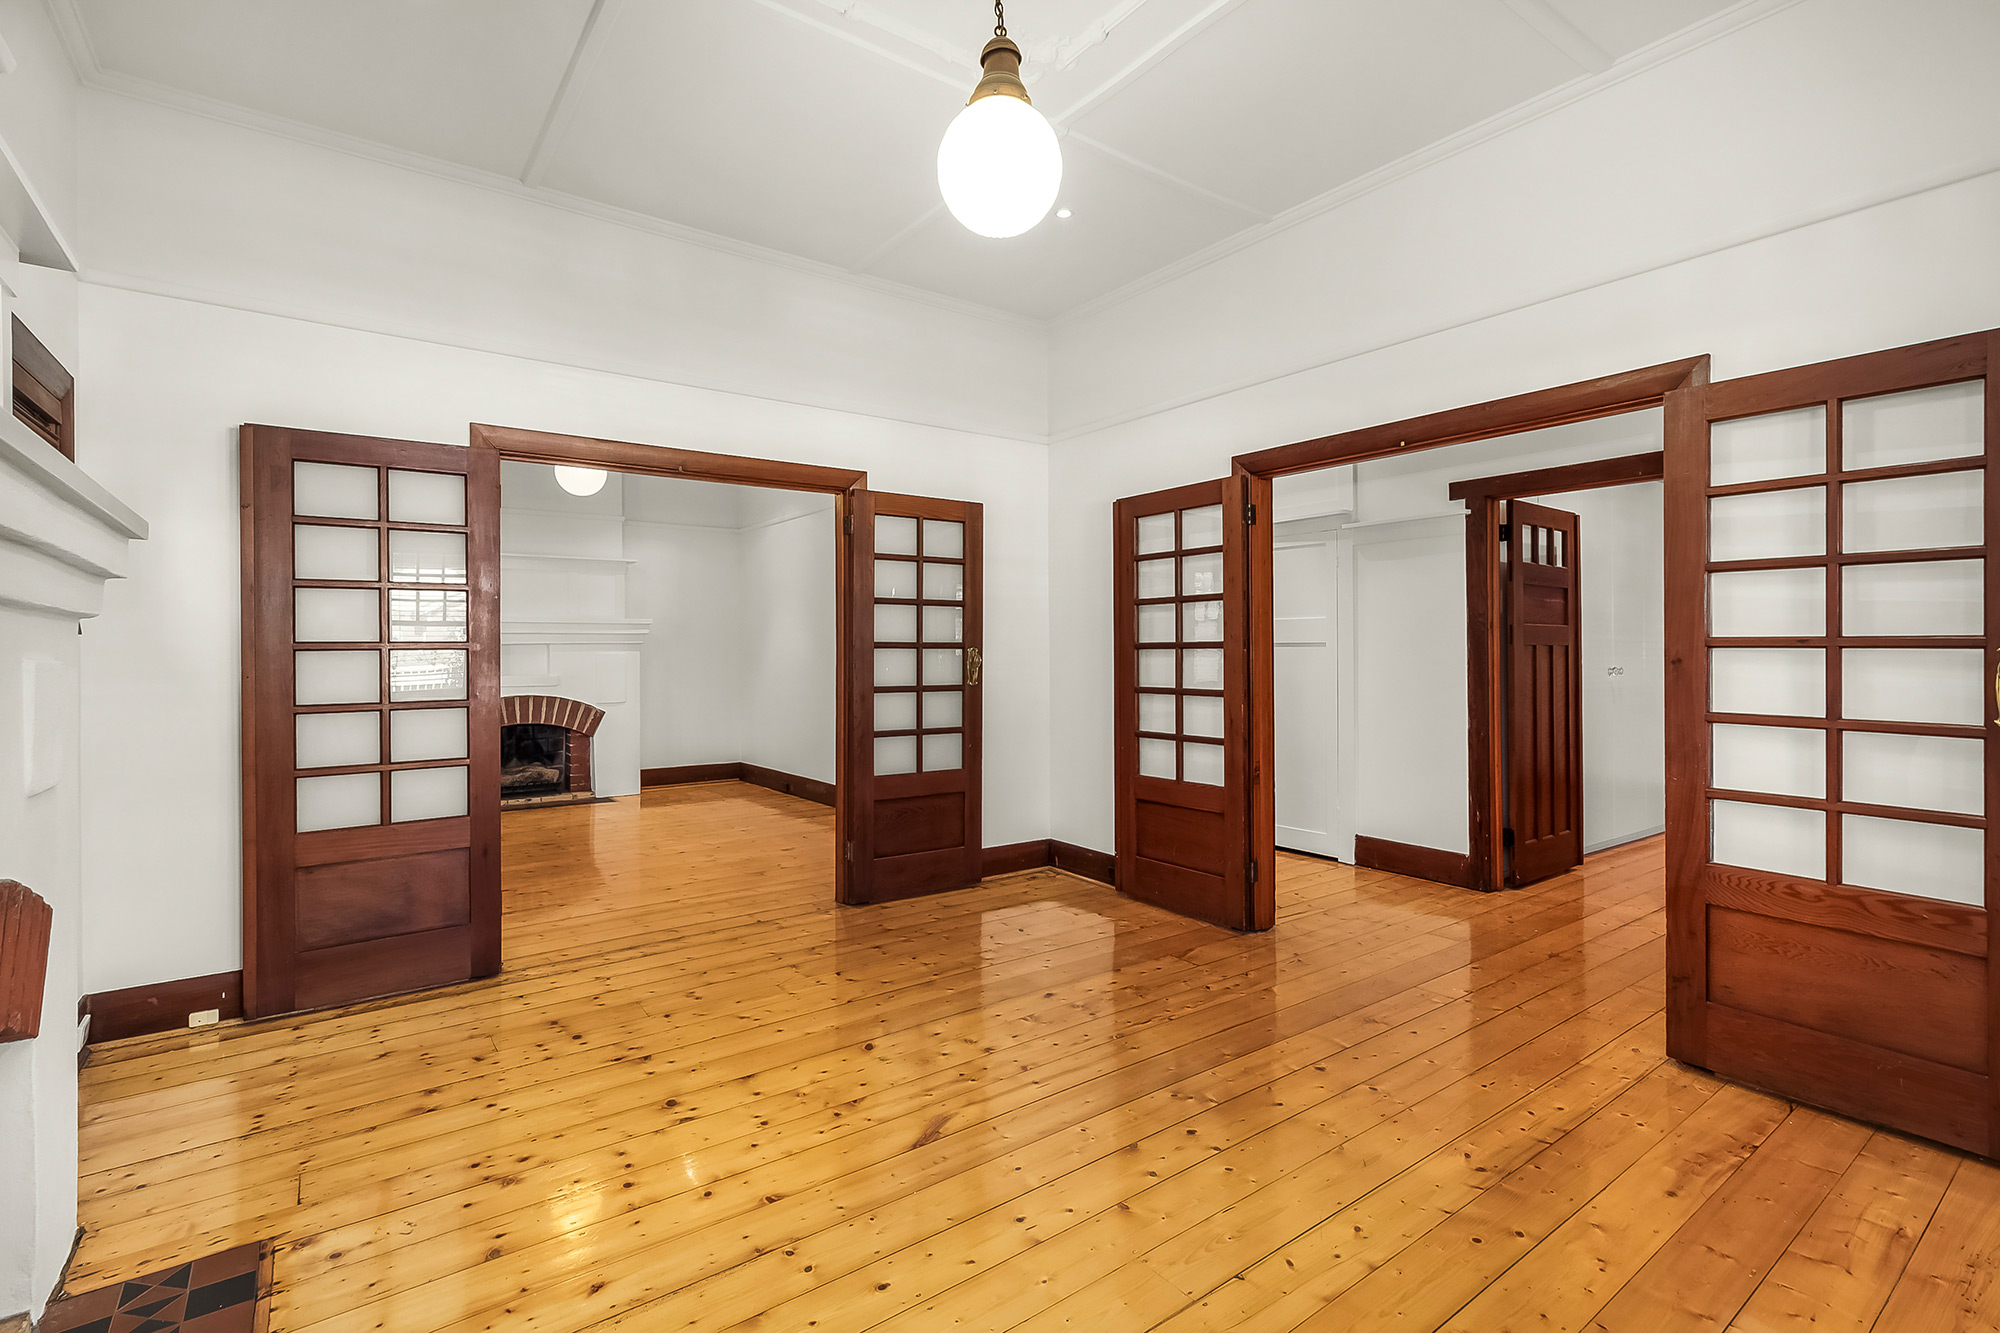 34 Shelley Street, Elwood 3184 - Image 2